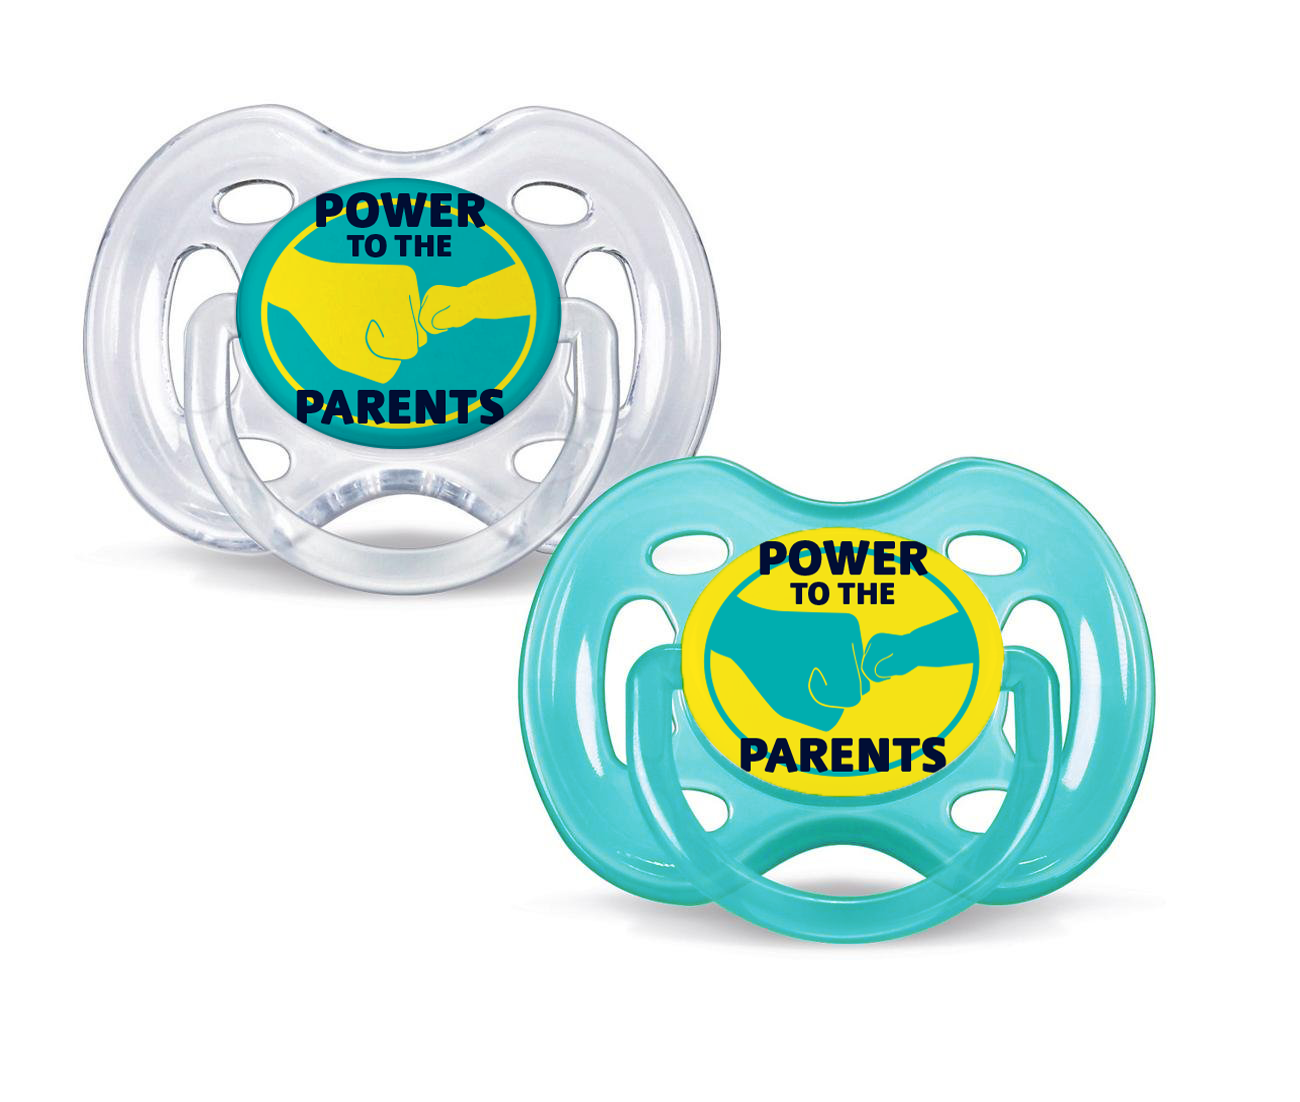 pampers pacifiers.png